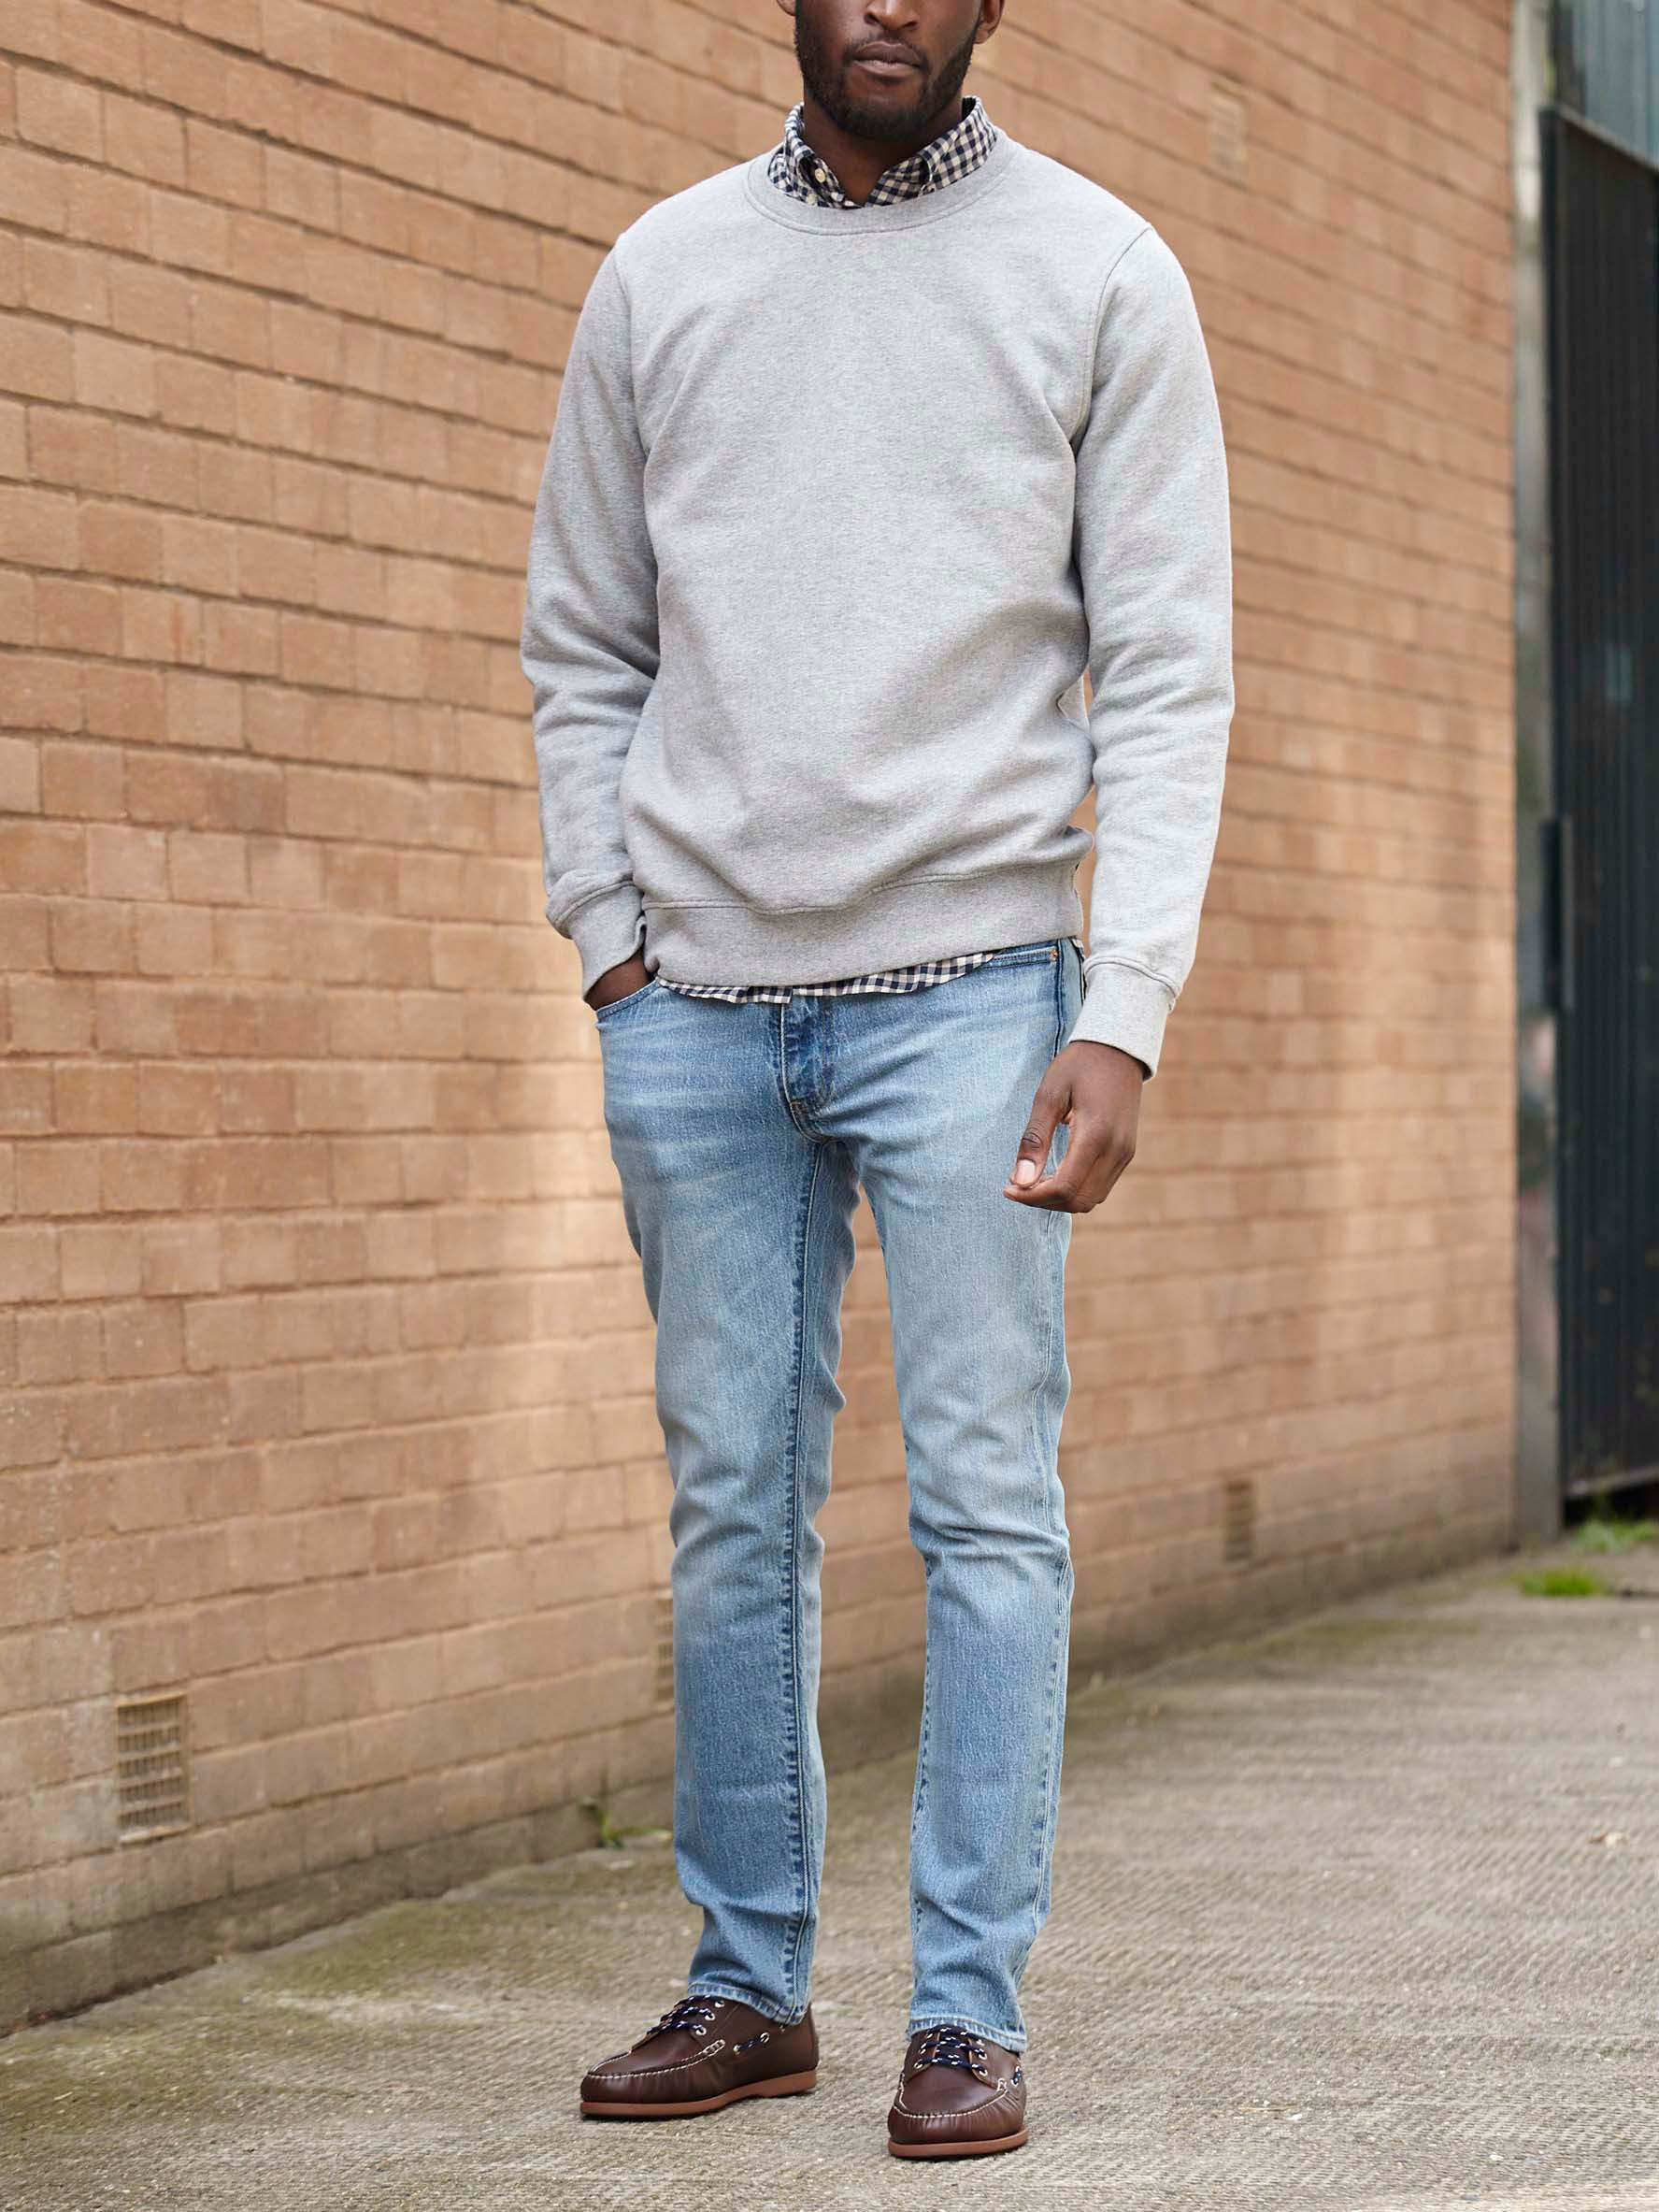 Men's outfit idea for 2021 with grey sweatshirt, light blue jeans, boat shoes. Suitable for spring and autumn.